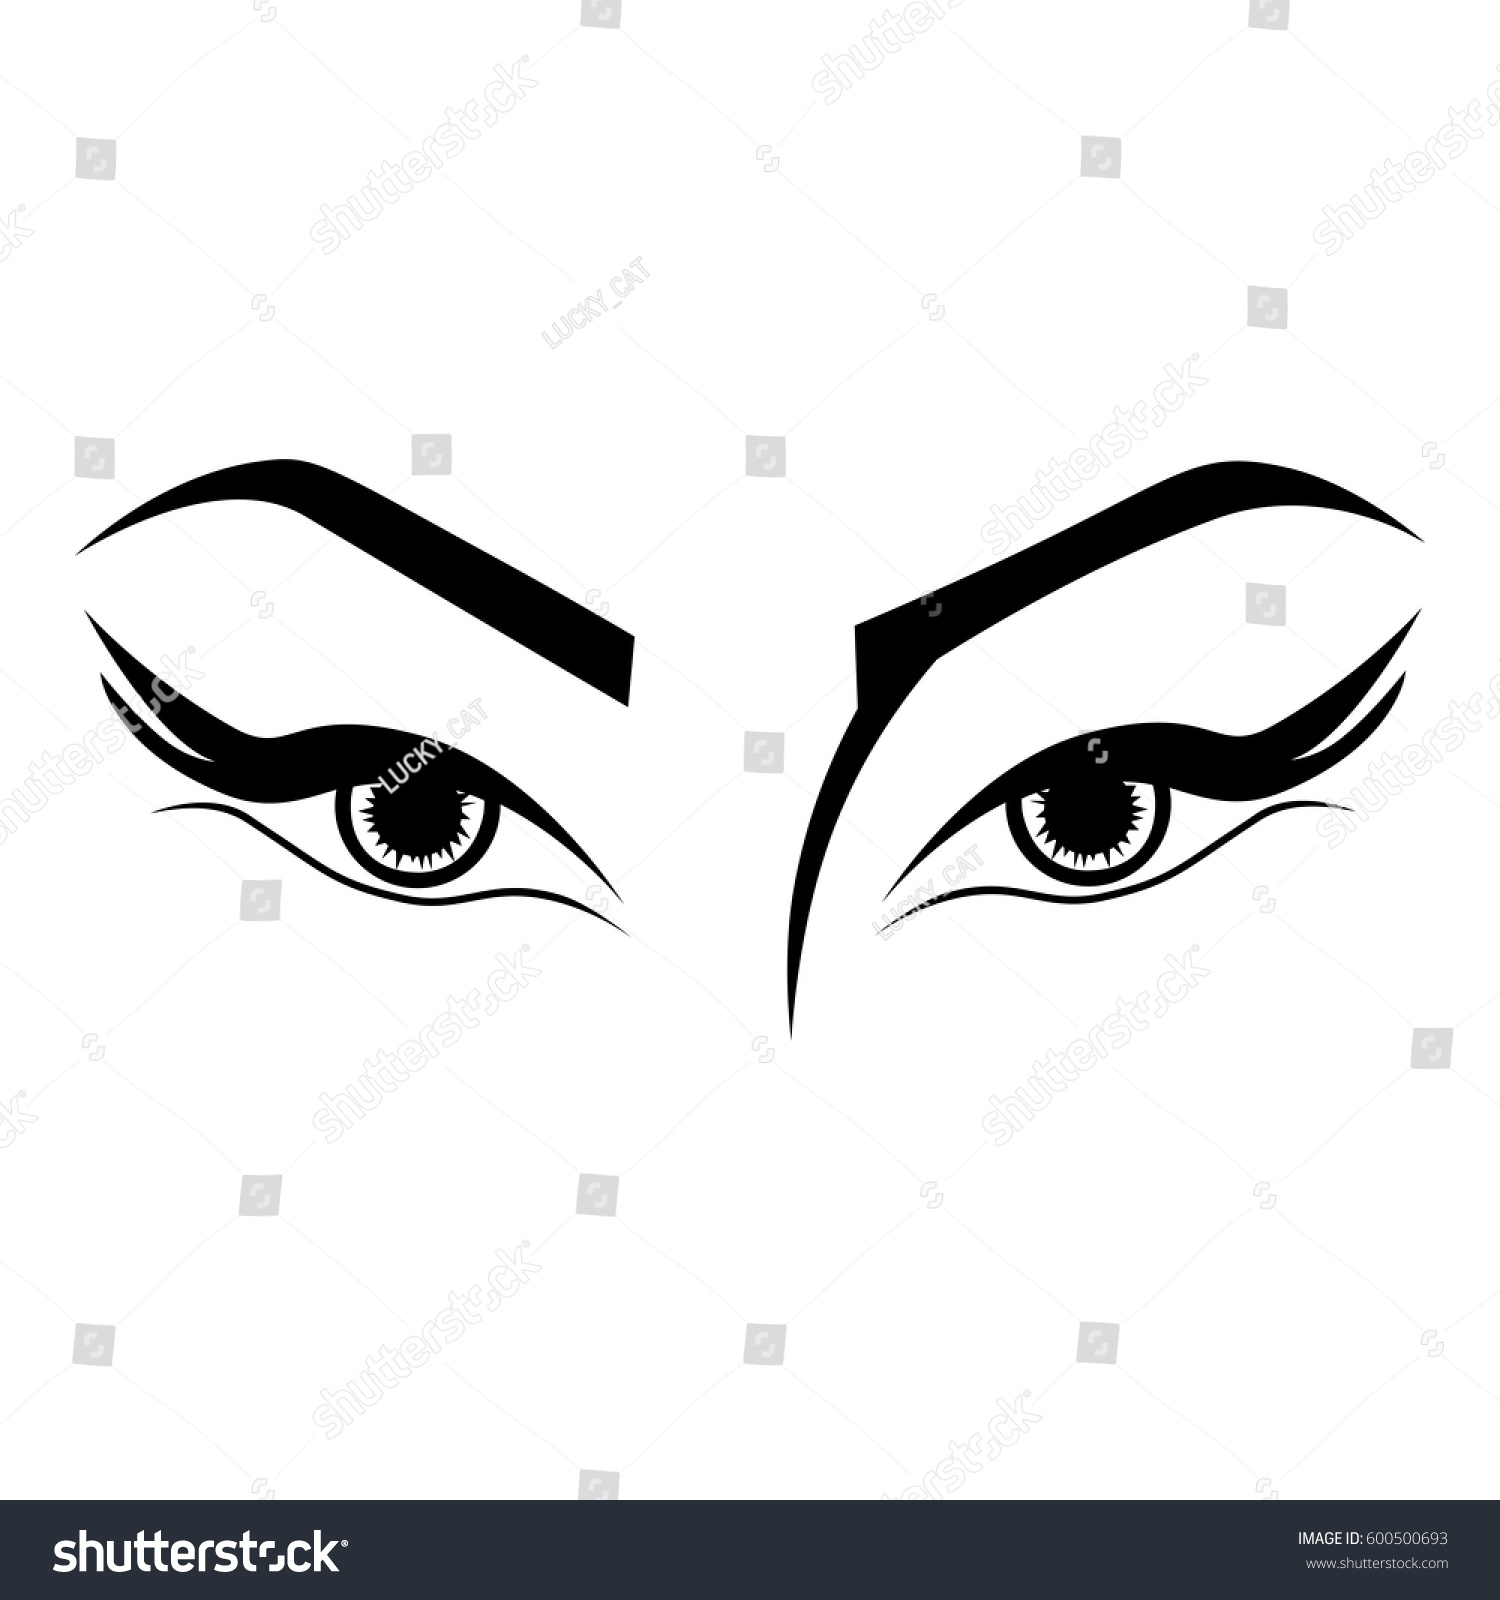 Illustration Outline Sketch Womans Eyes Tattoo Stock Vector Royalty